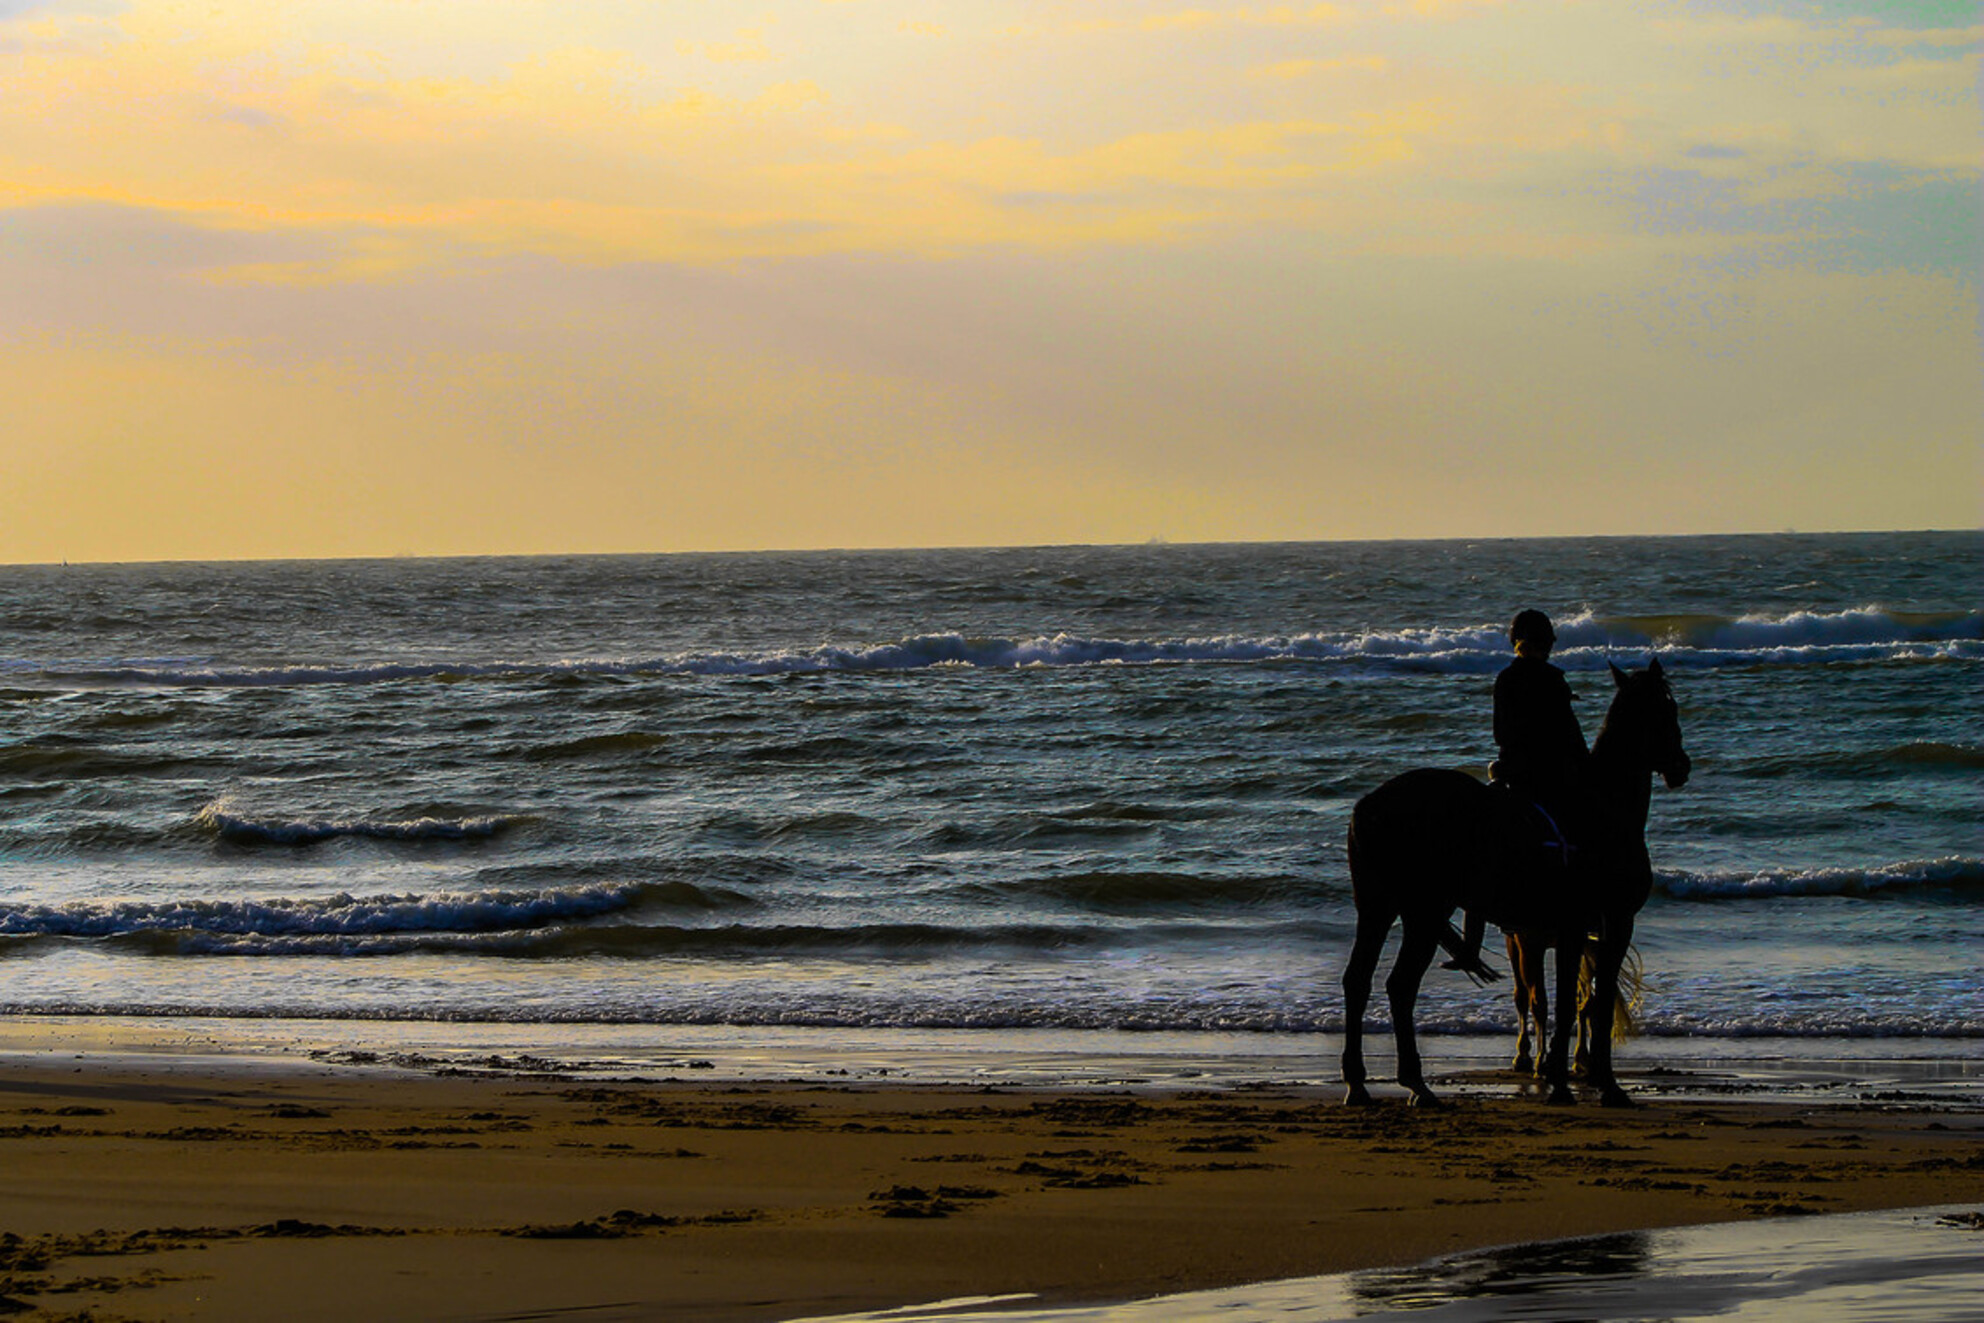 Enjoying the sunset - Enjoying the sunset at the beach - foto door denniseilander op 24-10-2013 - deze foto bevat: sea, sunset, sun, beach, orange, rest, sand, beautifull, horse, enjoying - Deze foto mag gebruikt worden in een Zoom.nl publicatie